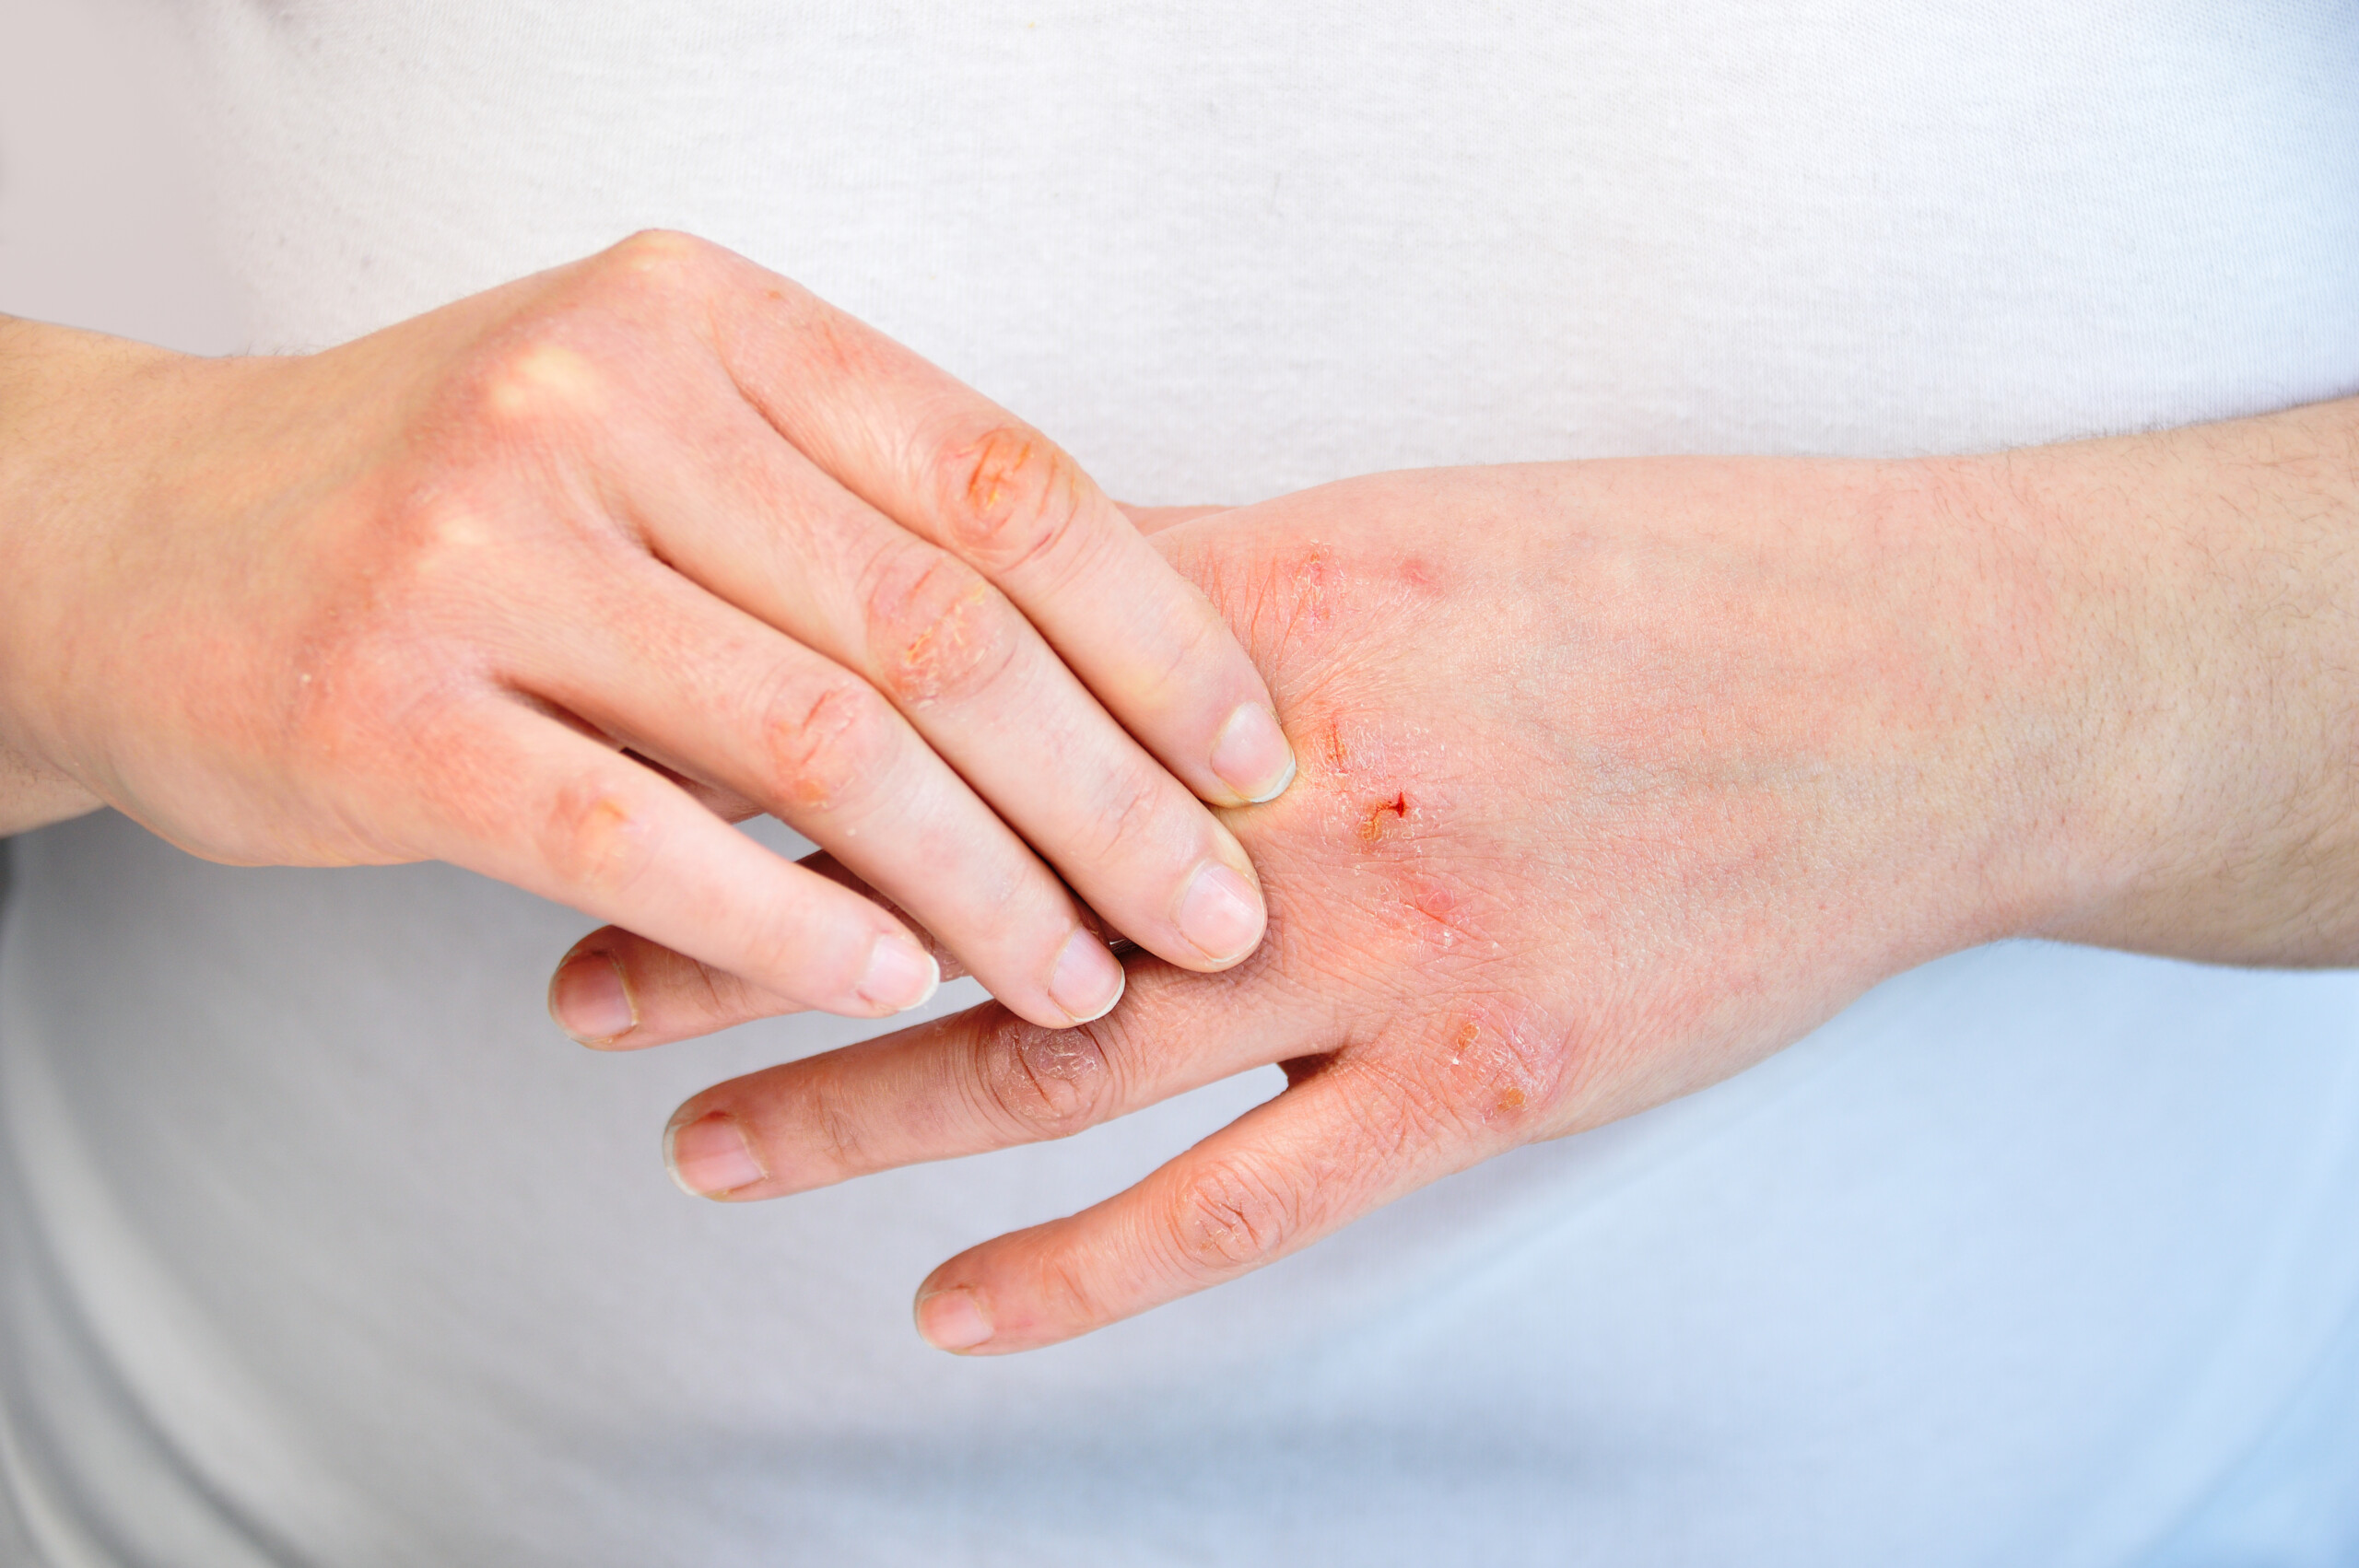 Can Skin Cancer Cause Skin to Peel?